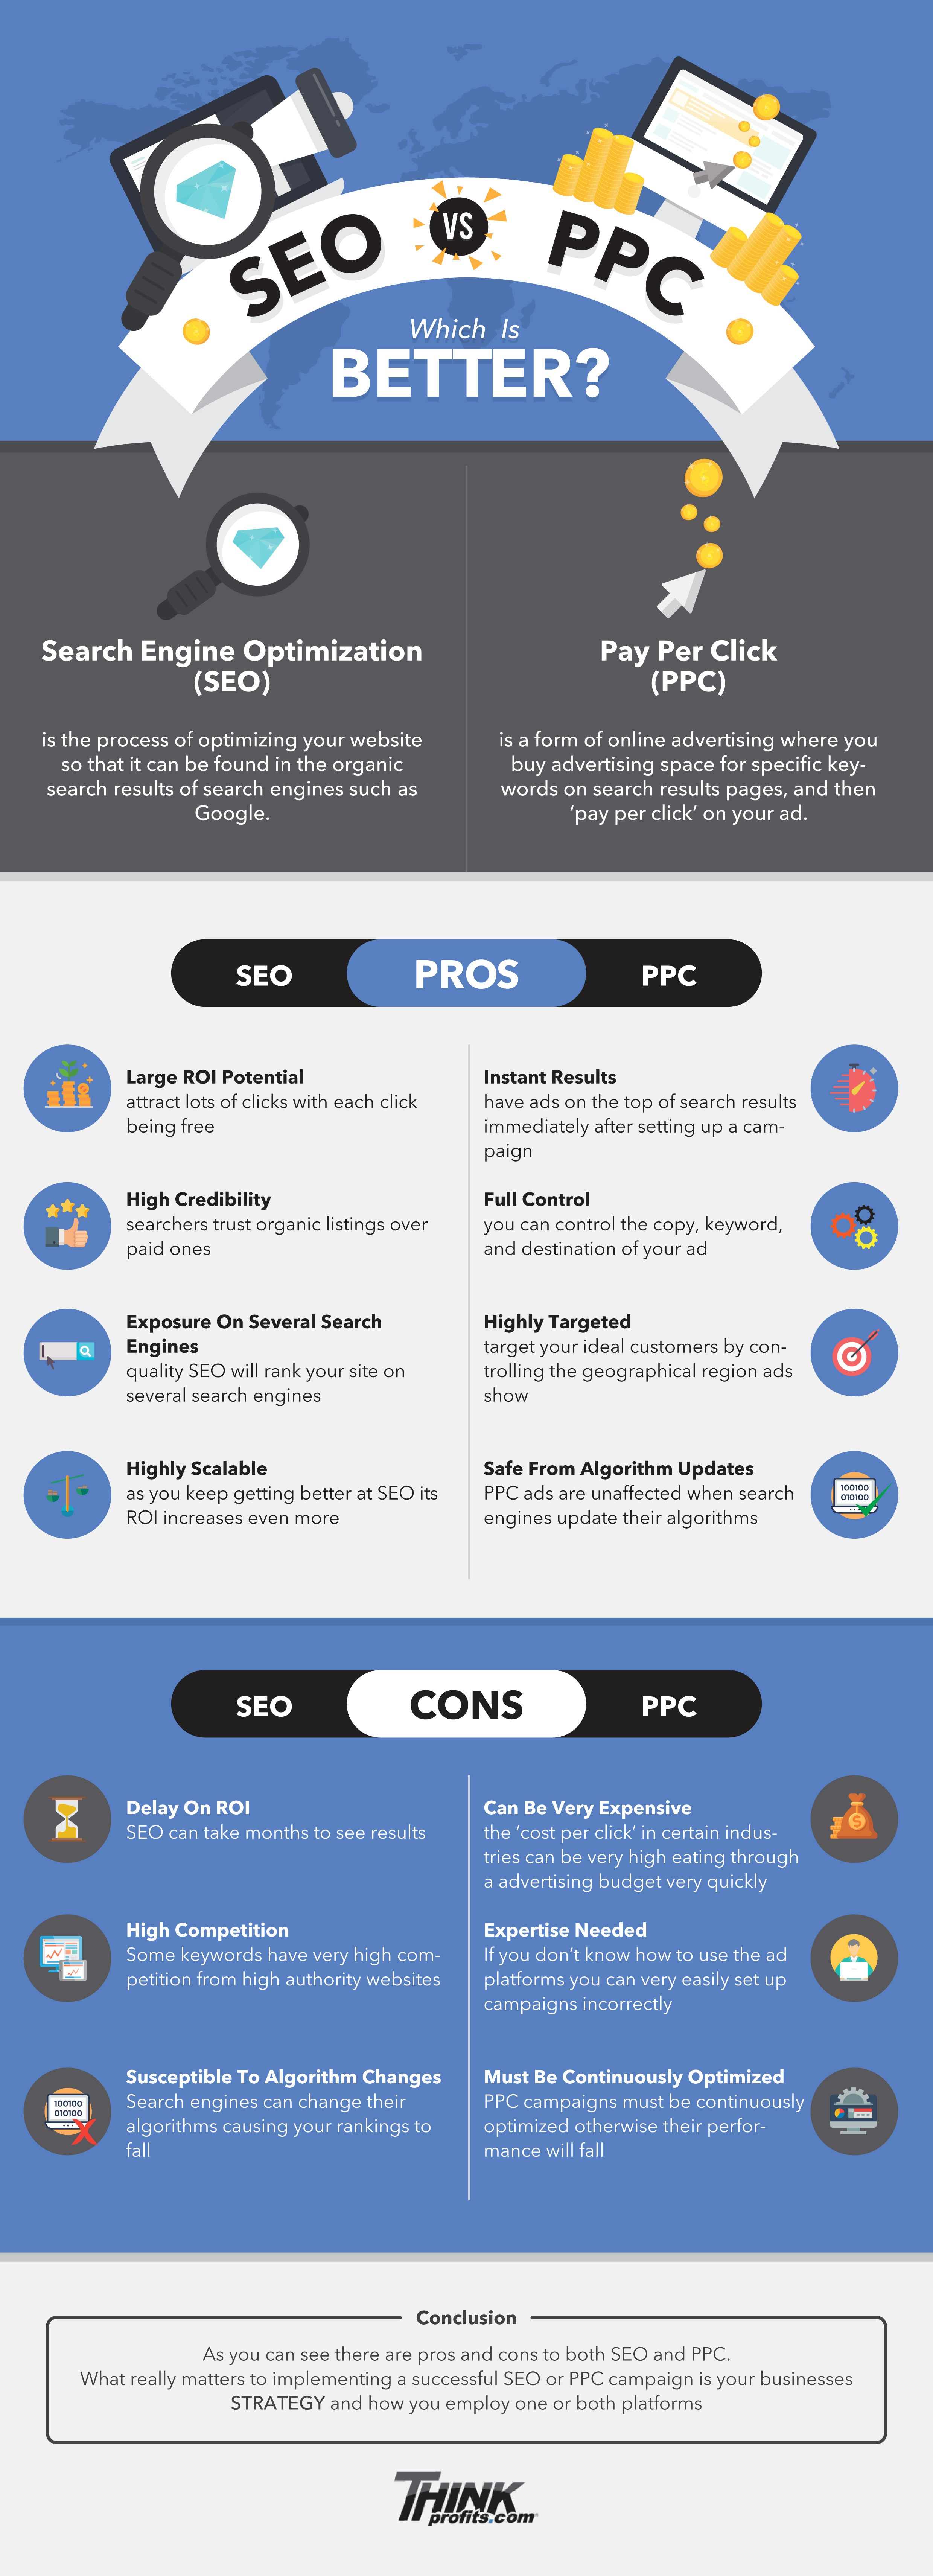 should-my-business-invest-in-seo-or-ppc-infographic